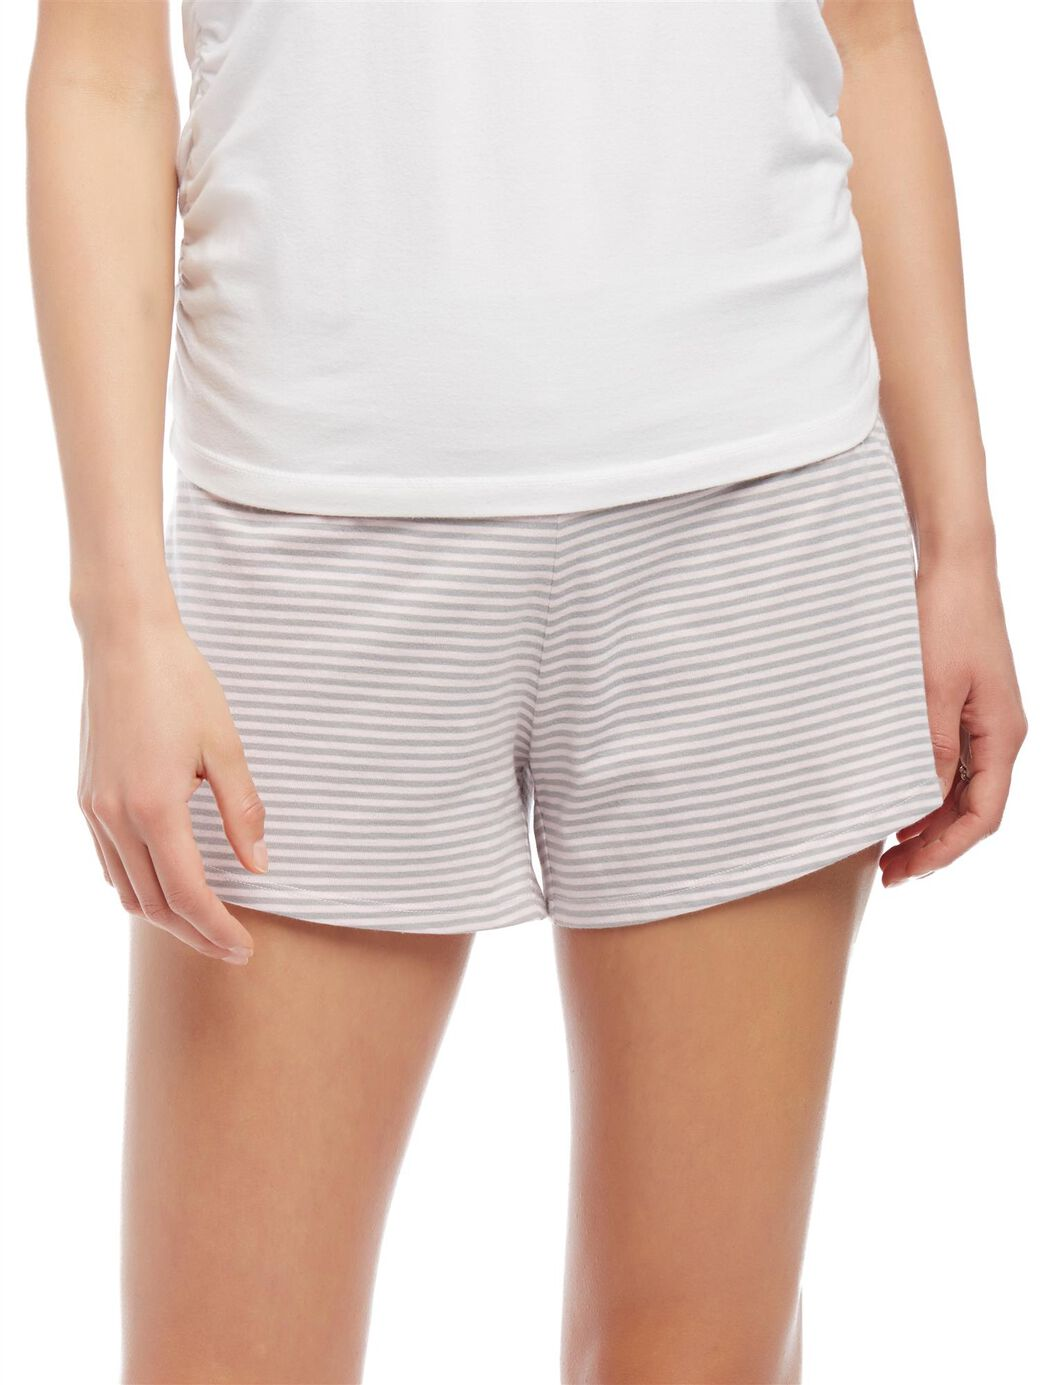 Relaxed Fit Maternity Sleep Shorts- Stripe at Motherhood Maternity in Victor, NY | Tuggl